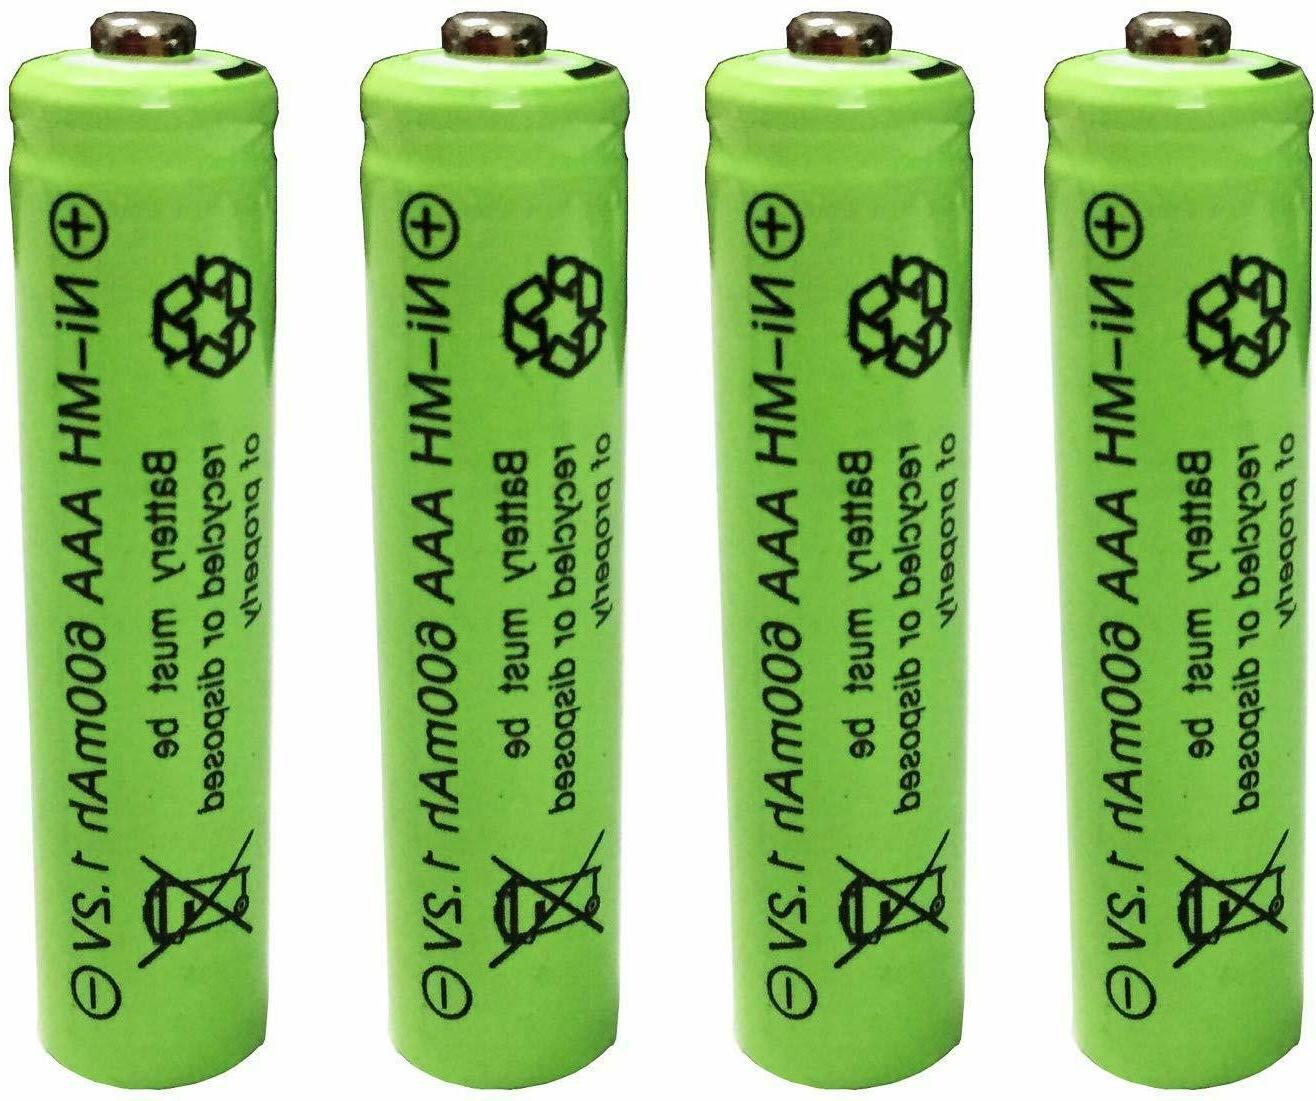 2-16 Pcs AAA Batteries Ni-MH 1.2v Battery